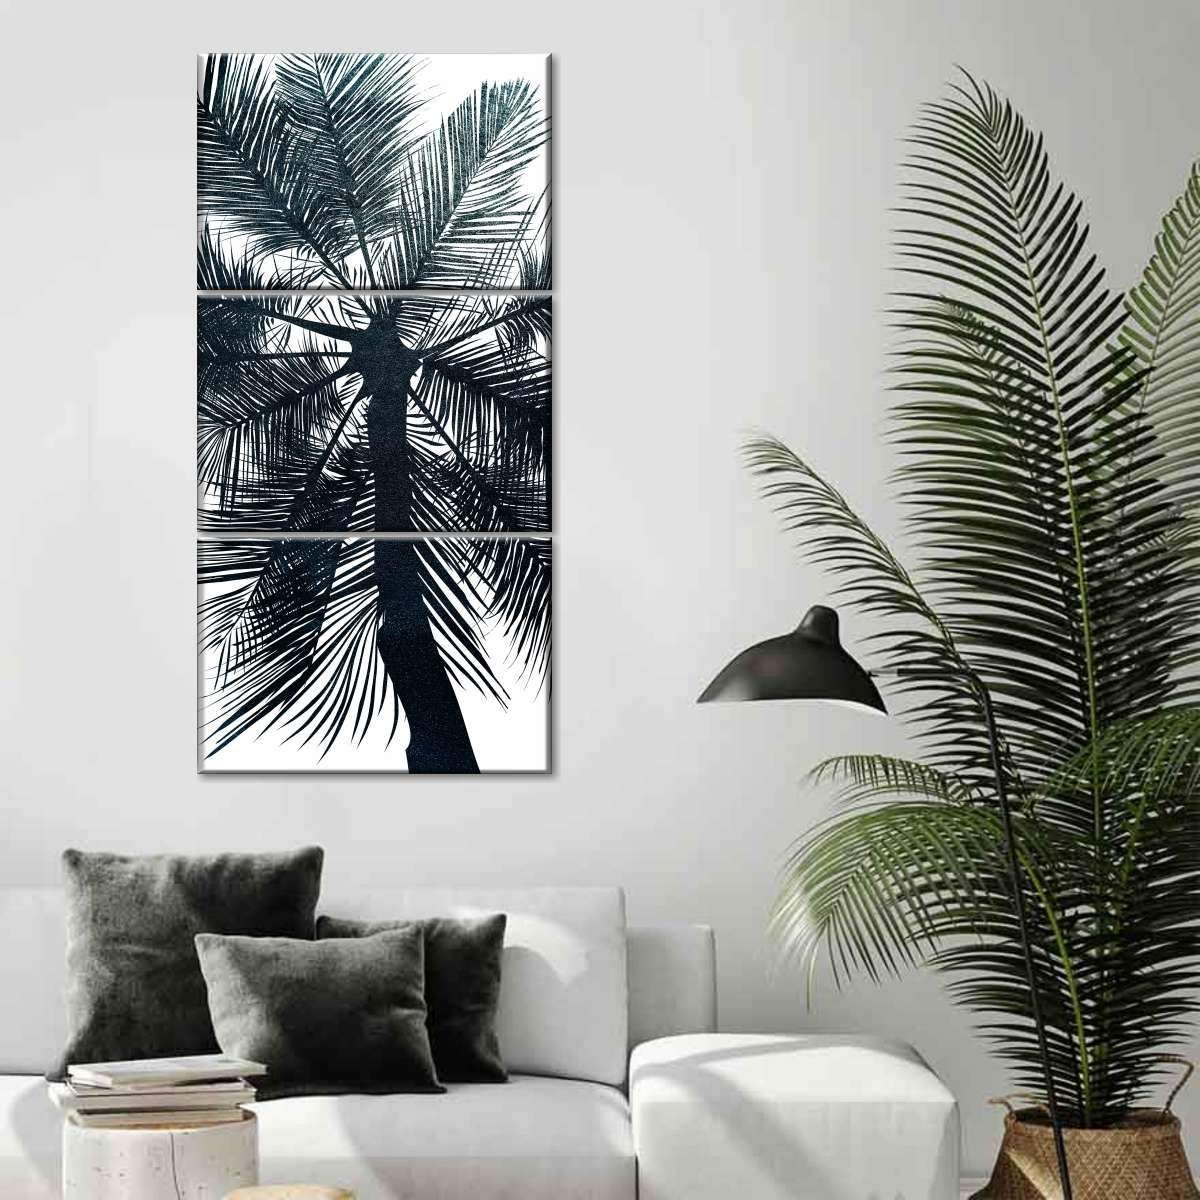 Leaves Shadow Canvas Painting Home Living Room Picture Poster Wall Decor Novelty